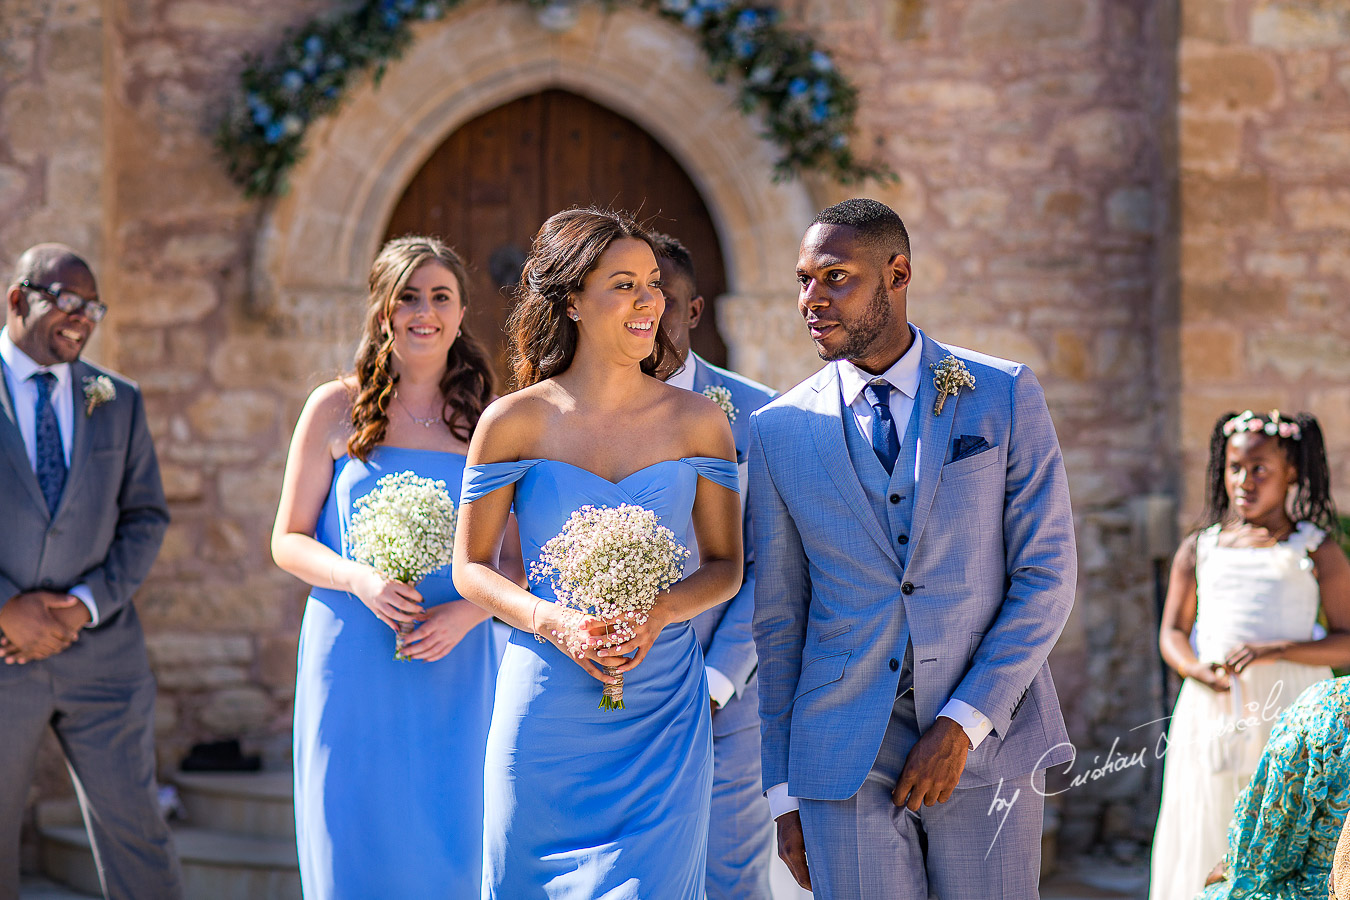 Bridesmaids and Groomsmen follow the bride and groom, moments captured at a wedding at Minthis Hills in Cyprus, by Cristian Dascalu.